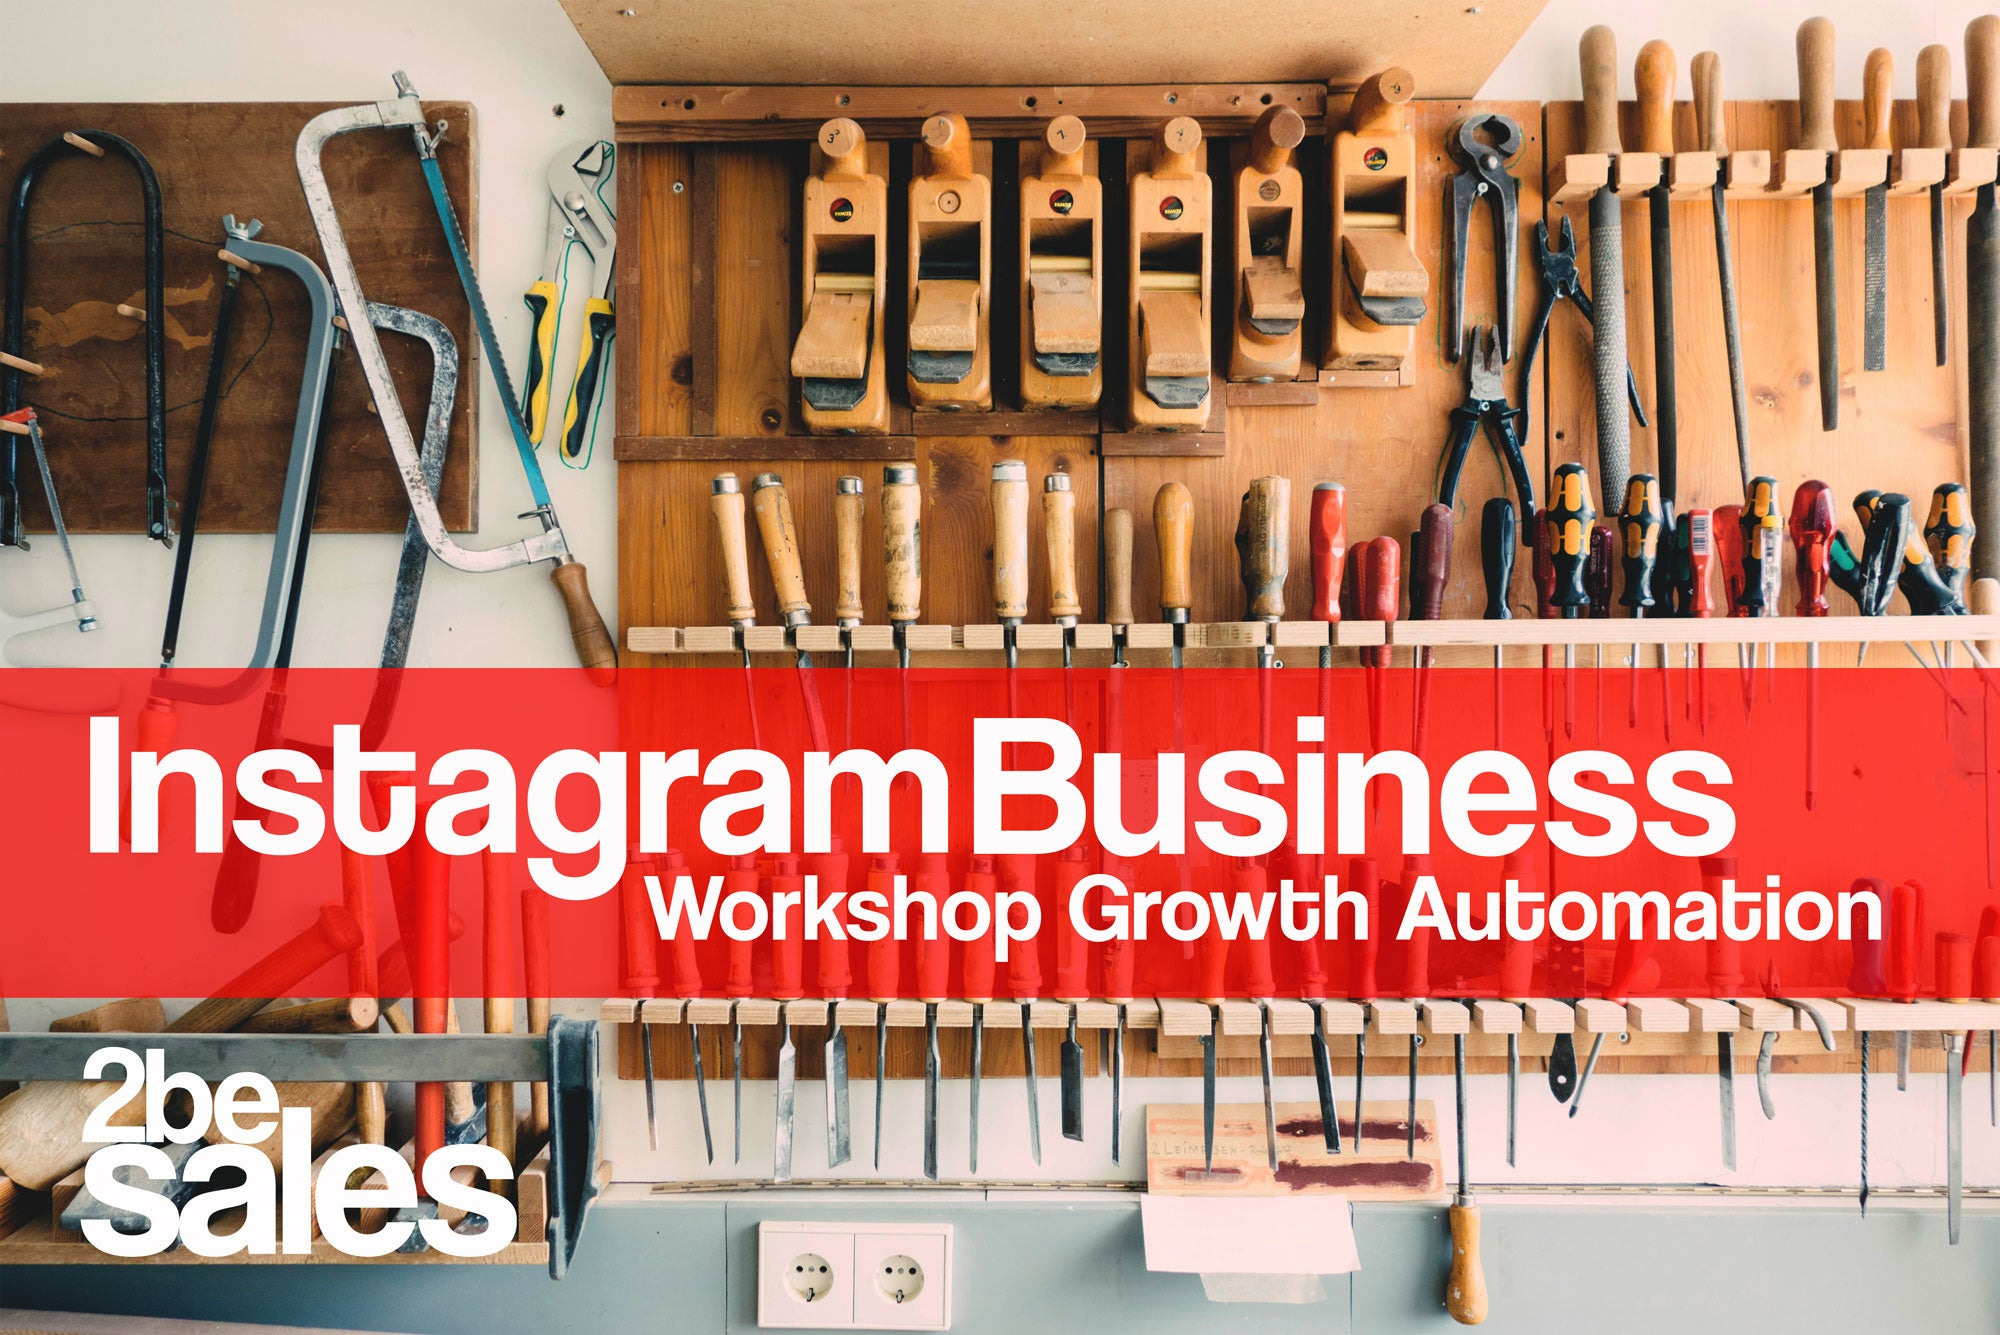 1/2-Tages Instagram Automation Business Workshop